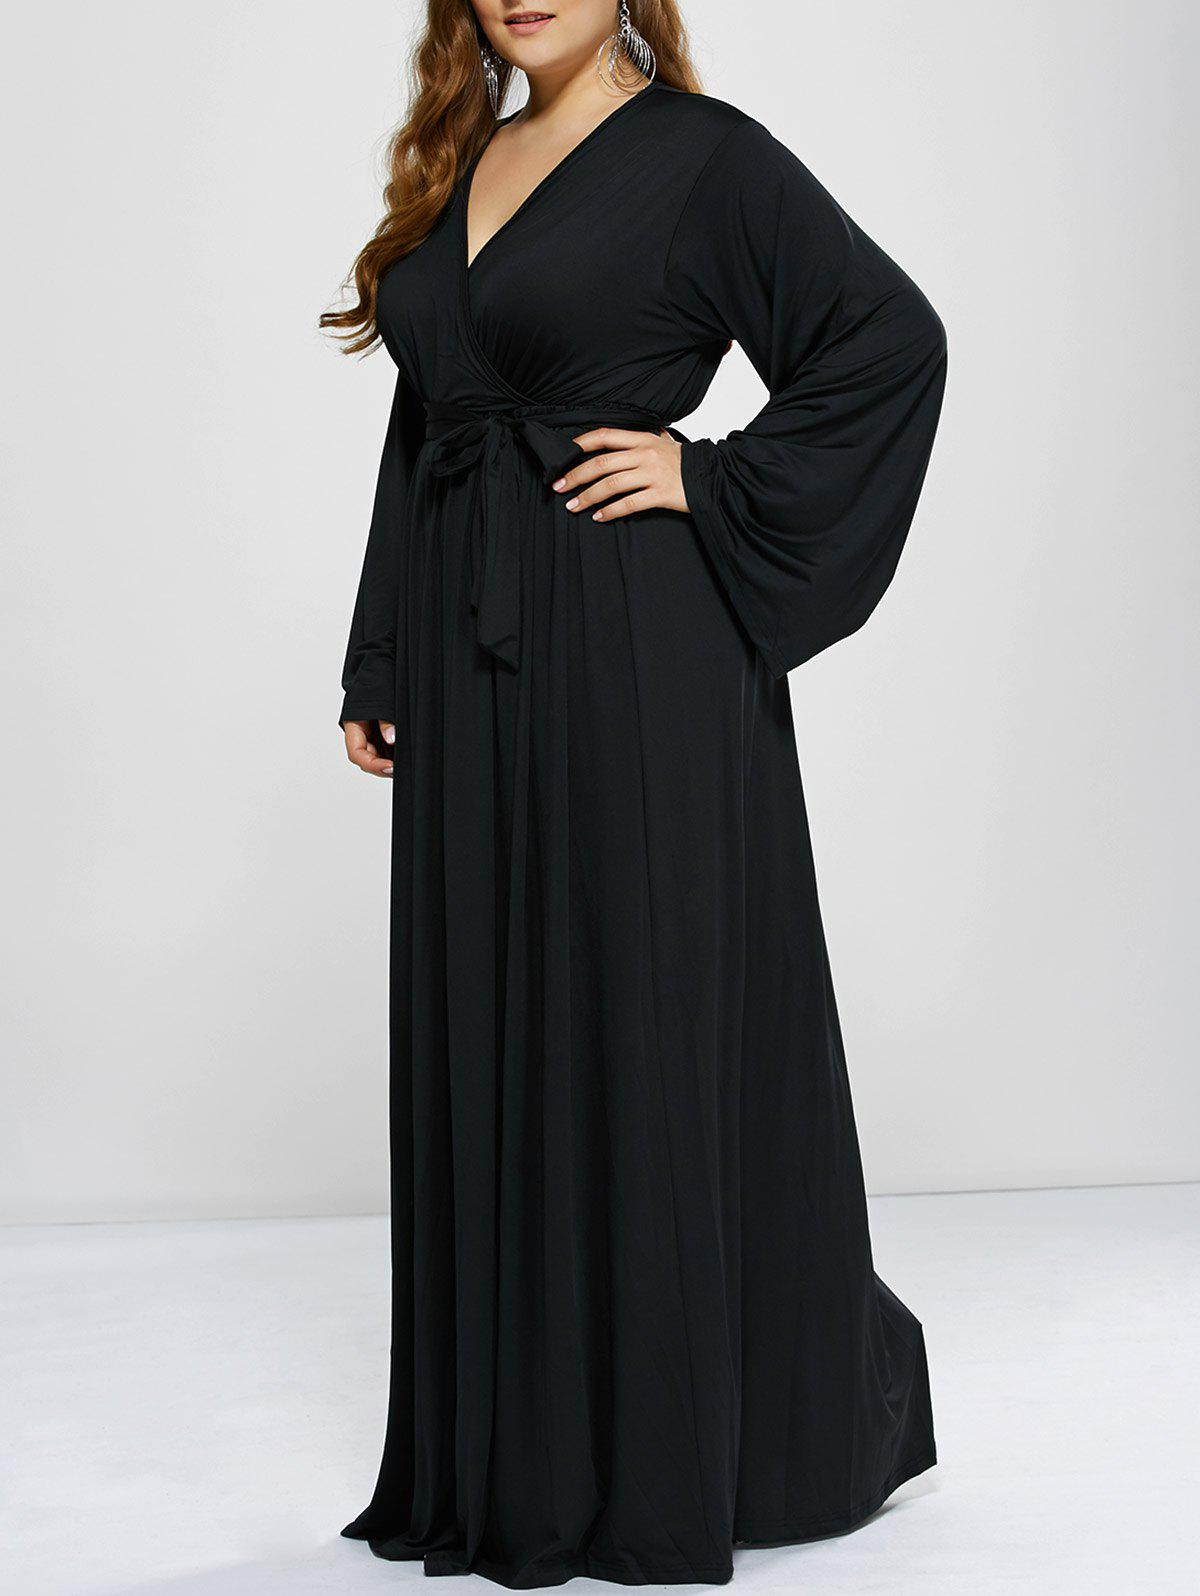 Plus Size Long Sleeve Modest Maxi Formal Dress   BLACK 3XL